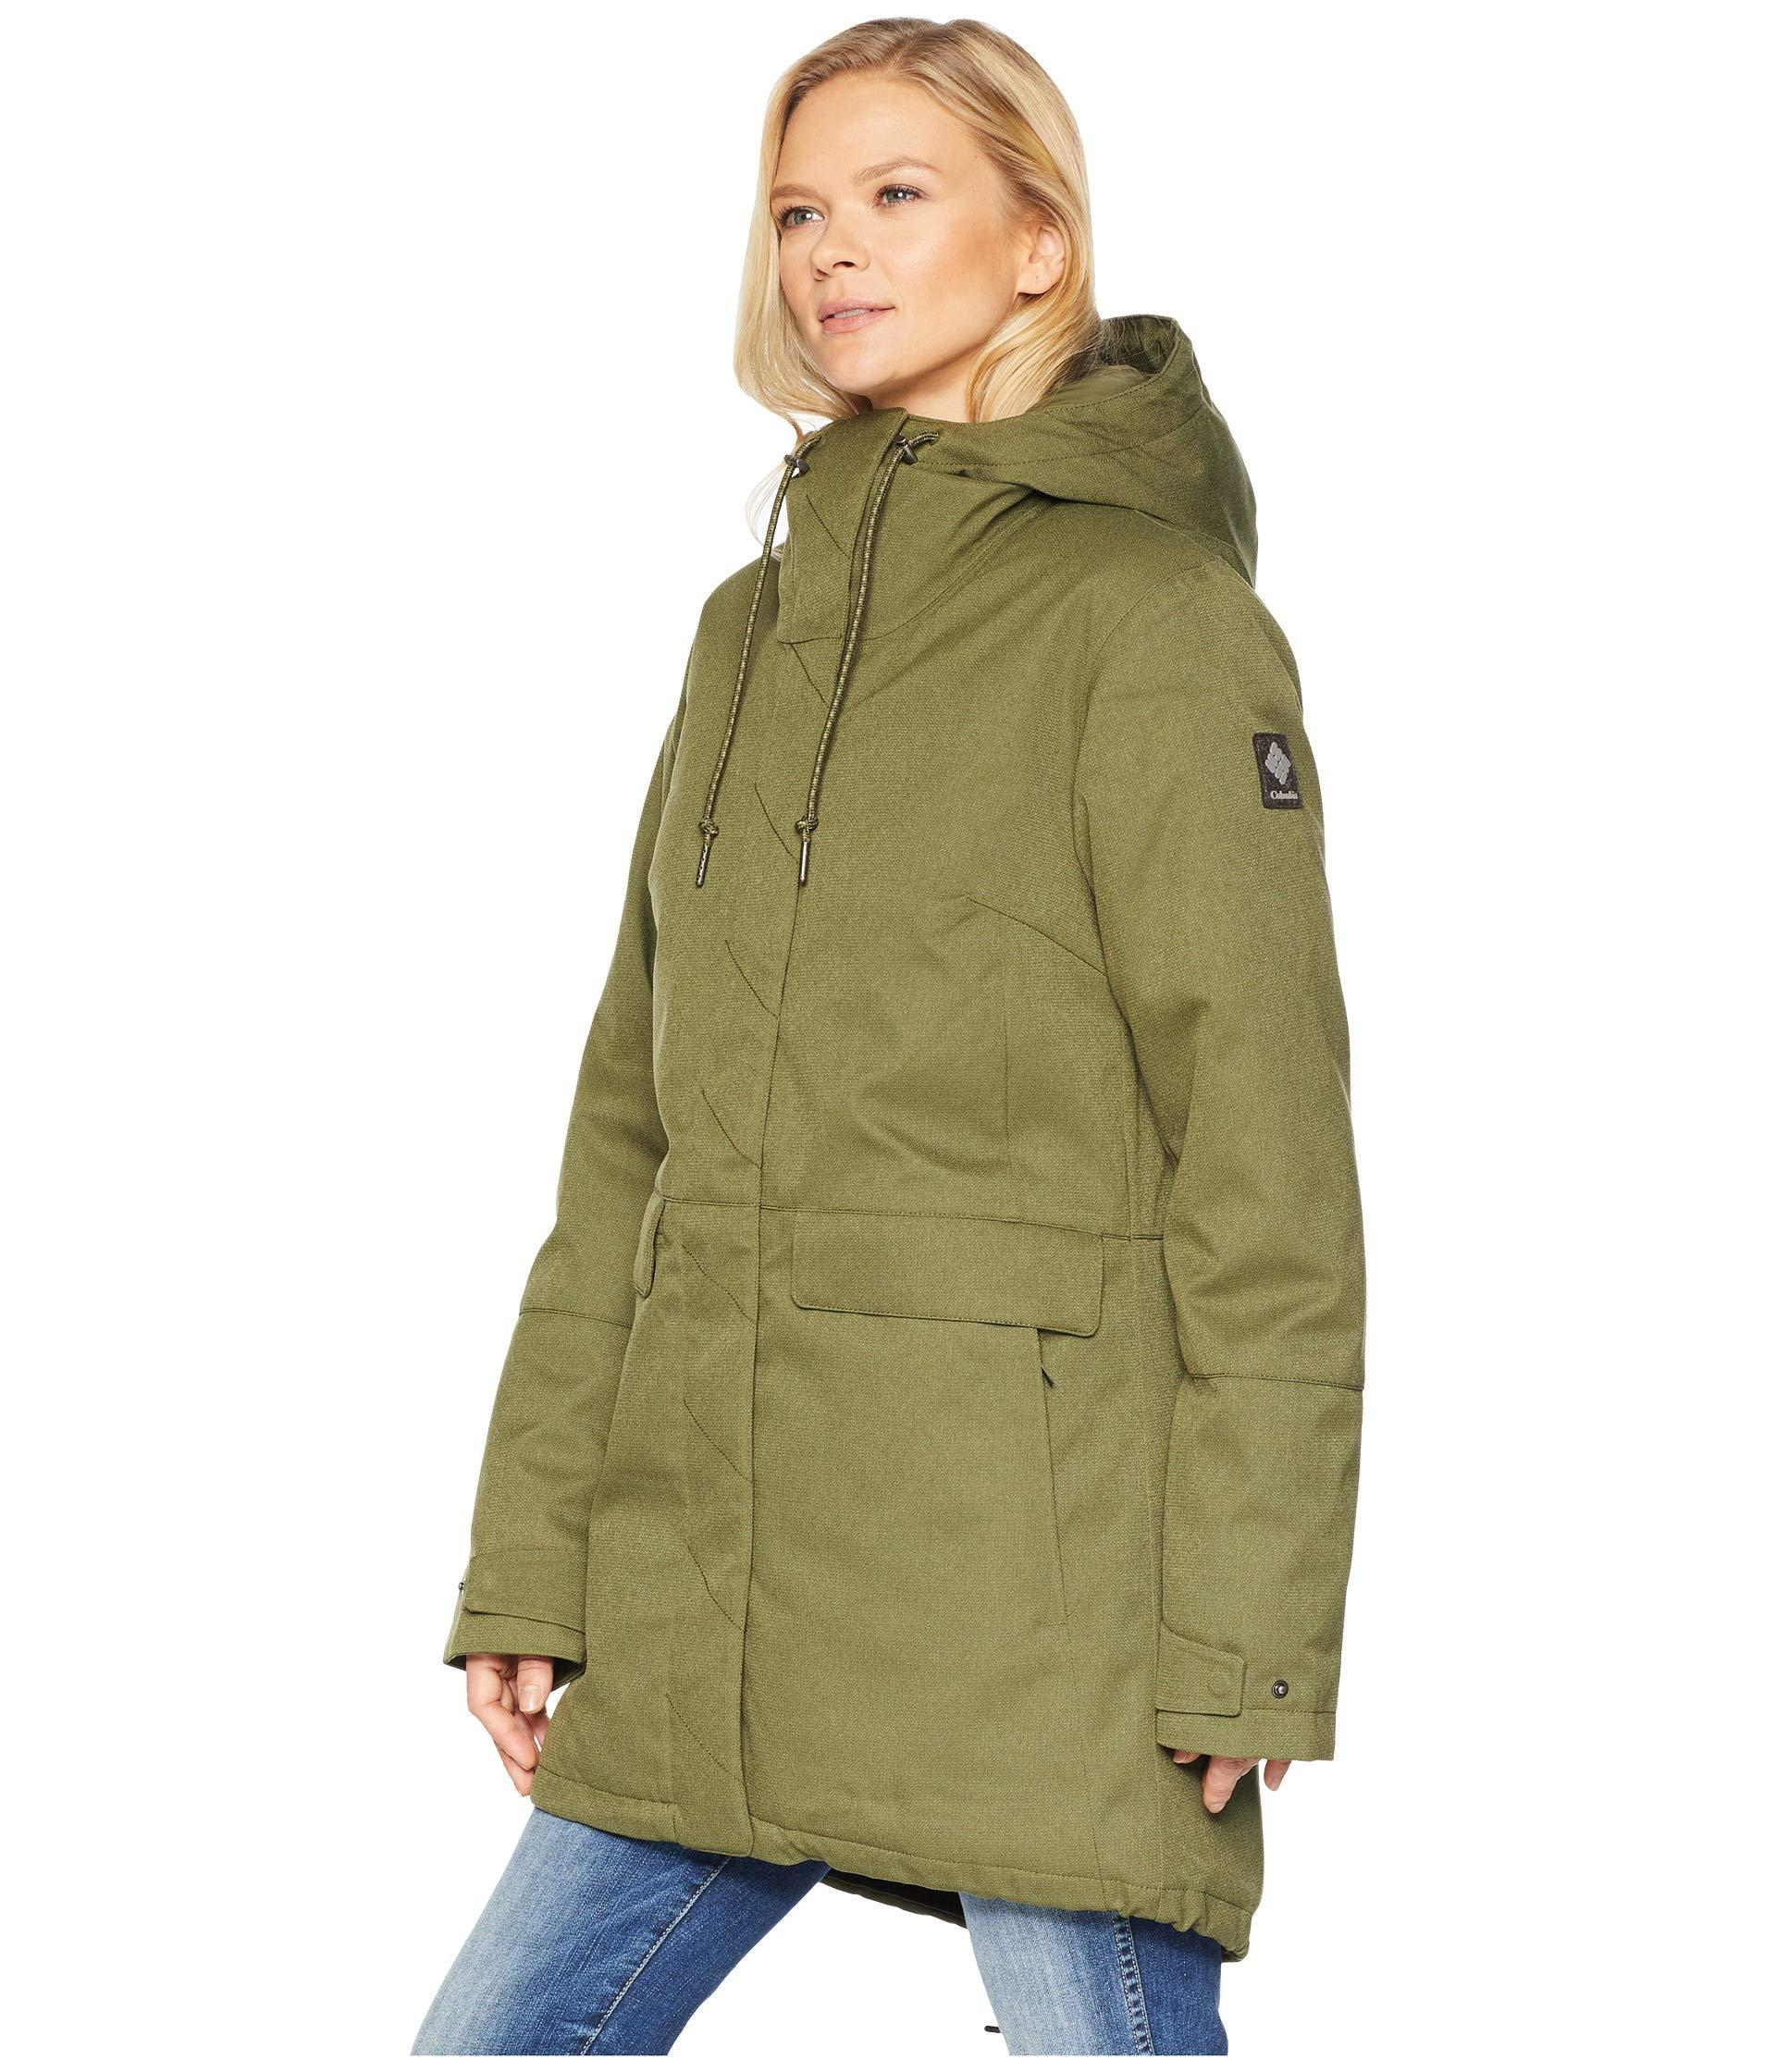 c090d1bf7d67 Lyst - Columbia Boundary Baytm Jacket in Green